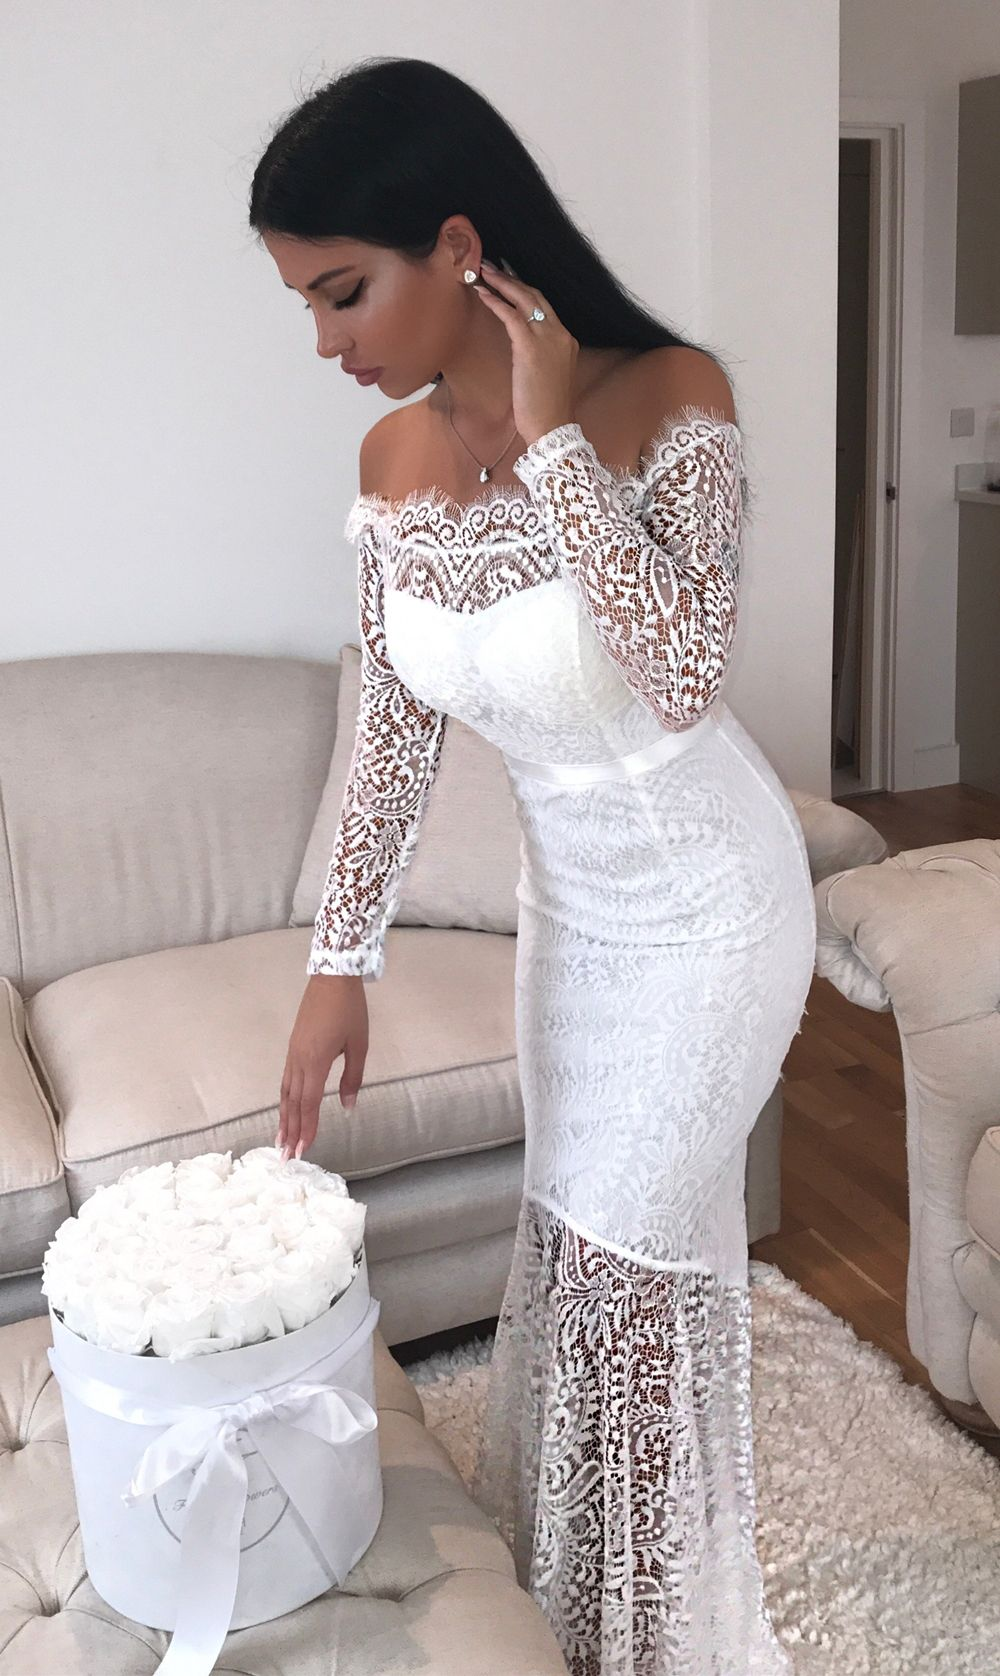 Unique White Off The Shoulder Prom Dresses With Sleeves Modest Long Sleeves Mer Prom Dresses Long With Sleeves White Lace Prom Dress Prom Dresses With Sleeves [ 1676 x 1000 Pixel ]